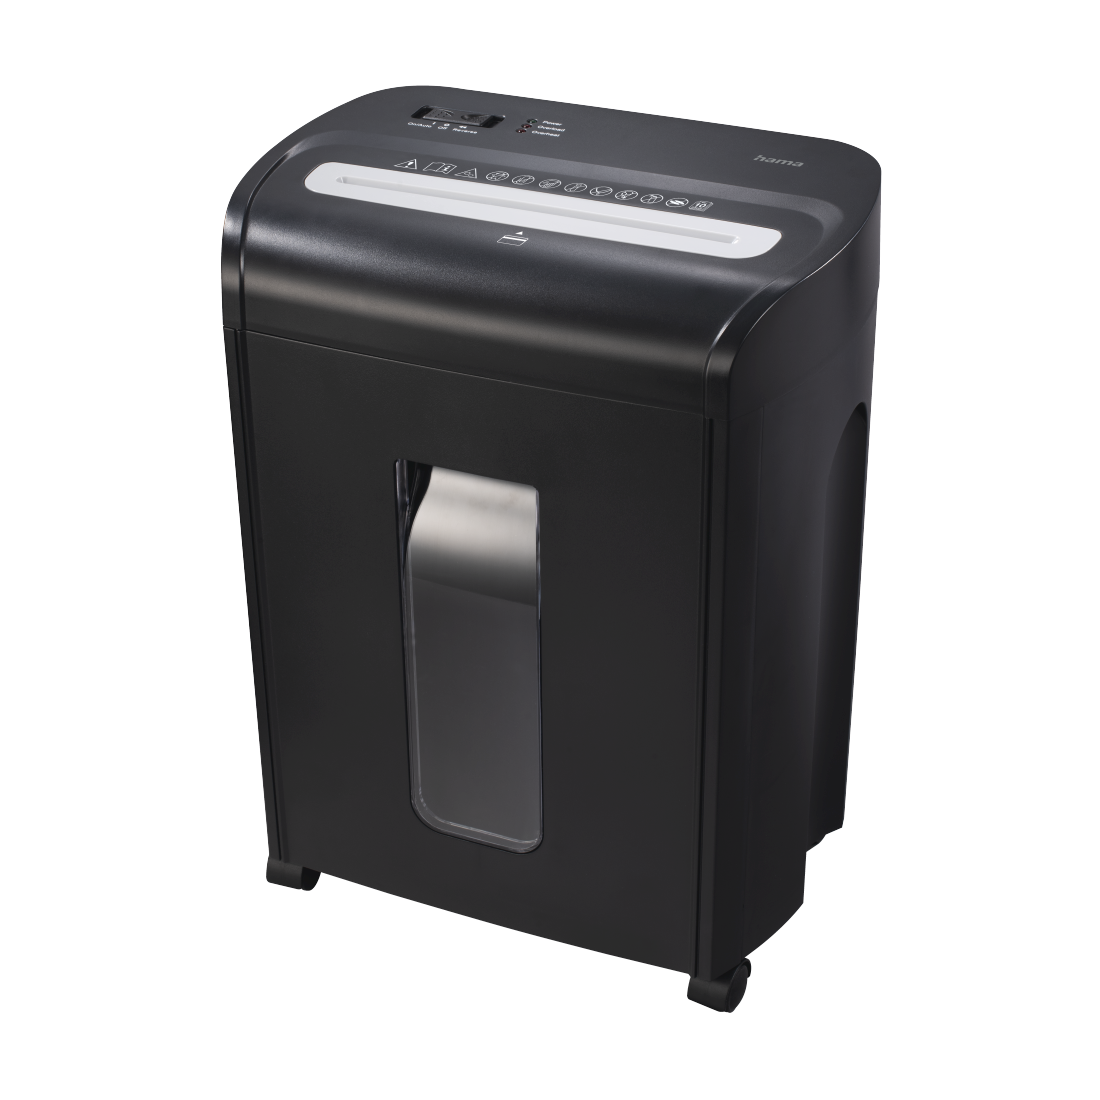 "abx High-Res Image - Hama, ""Premium M10"" Shredder, Shredder with Security Level E4 P4 T5"